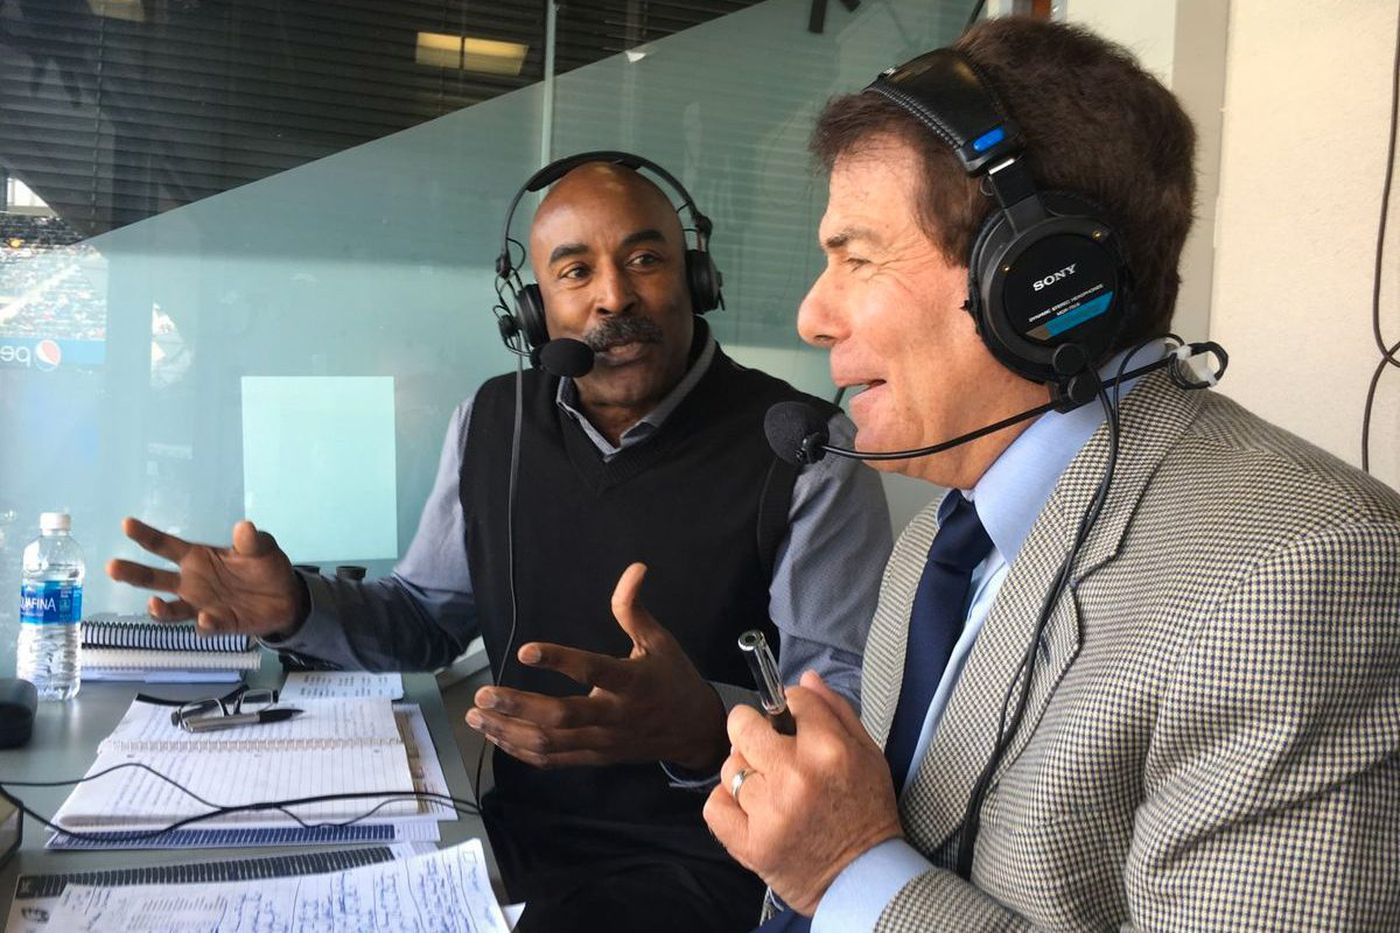 New WIP deal means Merrill Reese and Mike Quick will call Eagles games for a while